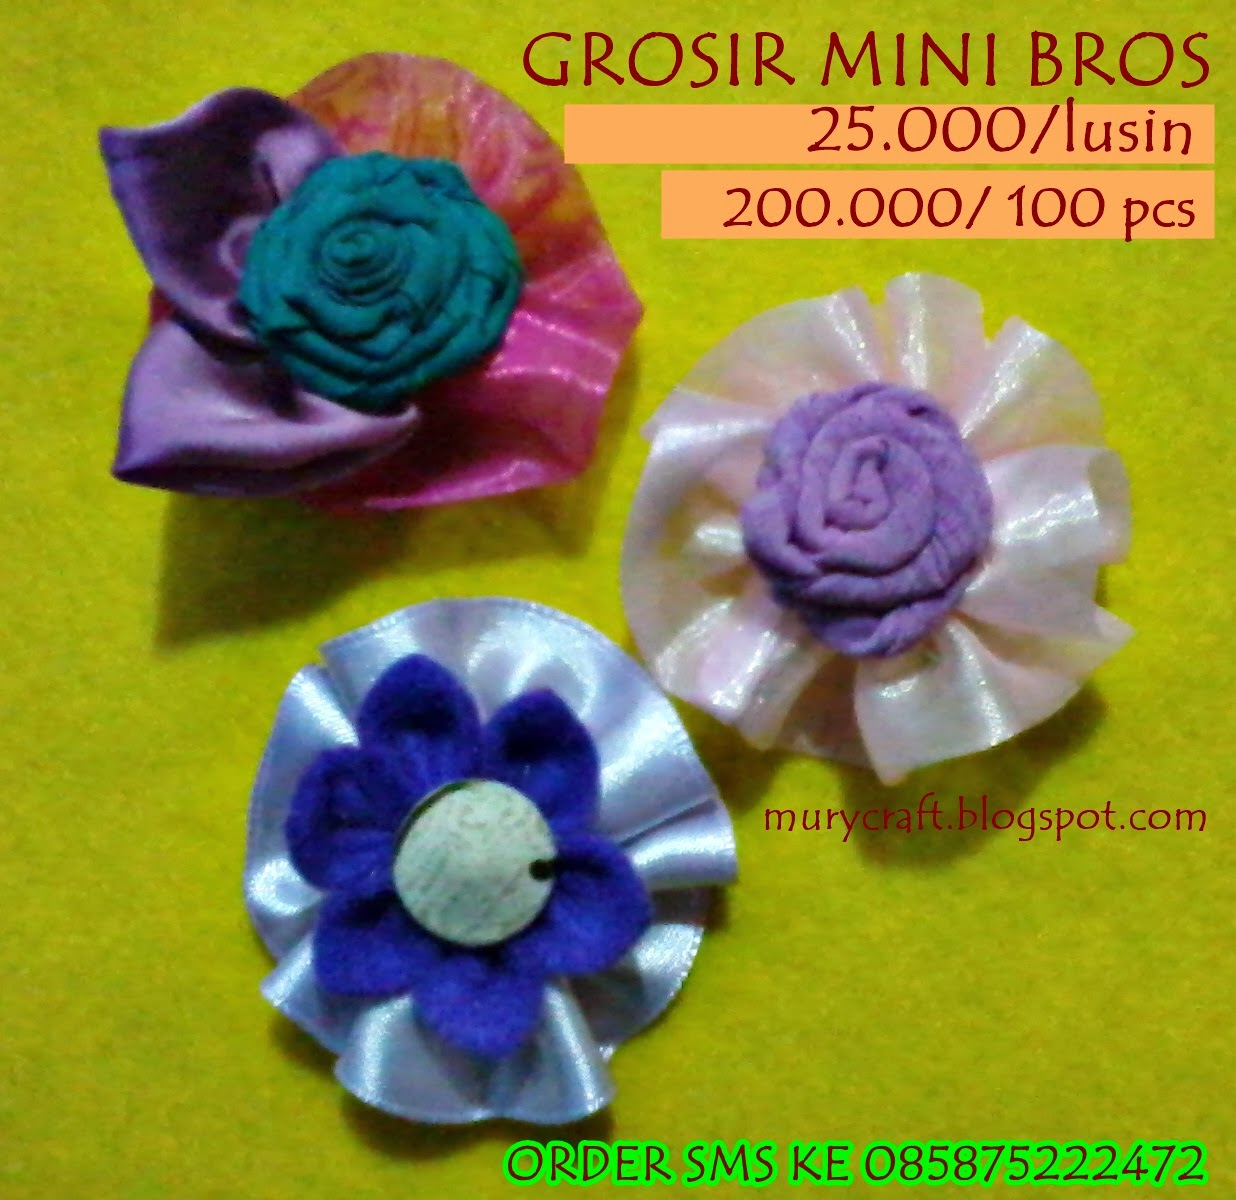 GROSIR BROS MINI-02